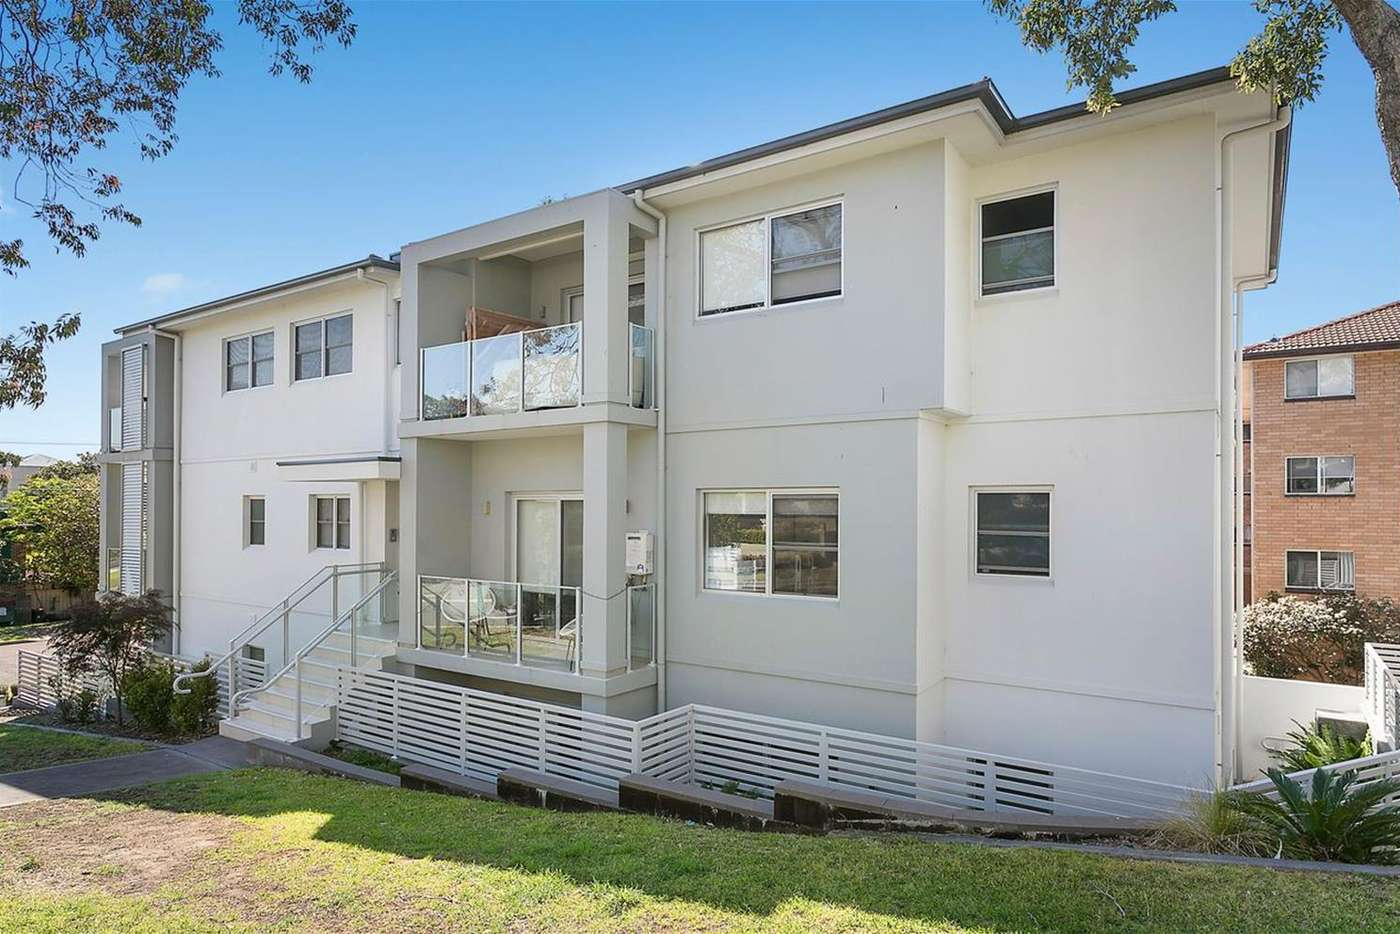 Main view of Homely apartment listing, 3/40 Girrilang Rd, Cronulla NSW 2230